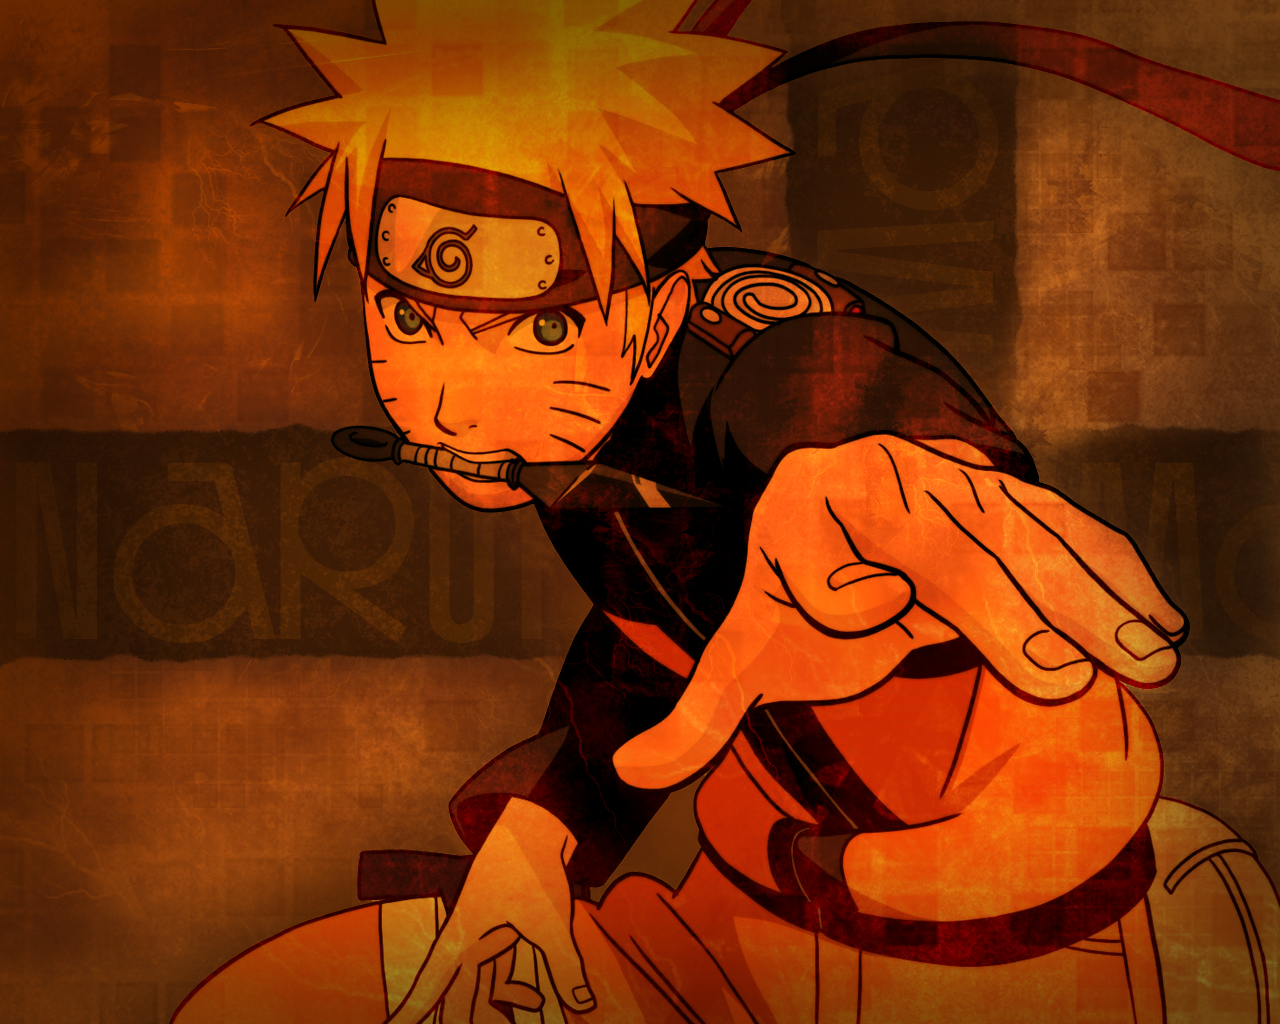 Naruto Strikes Ninja Pose This Fabulous Orange Wallpaper